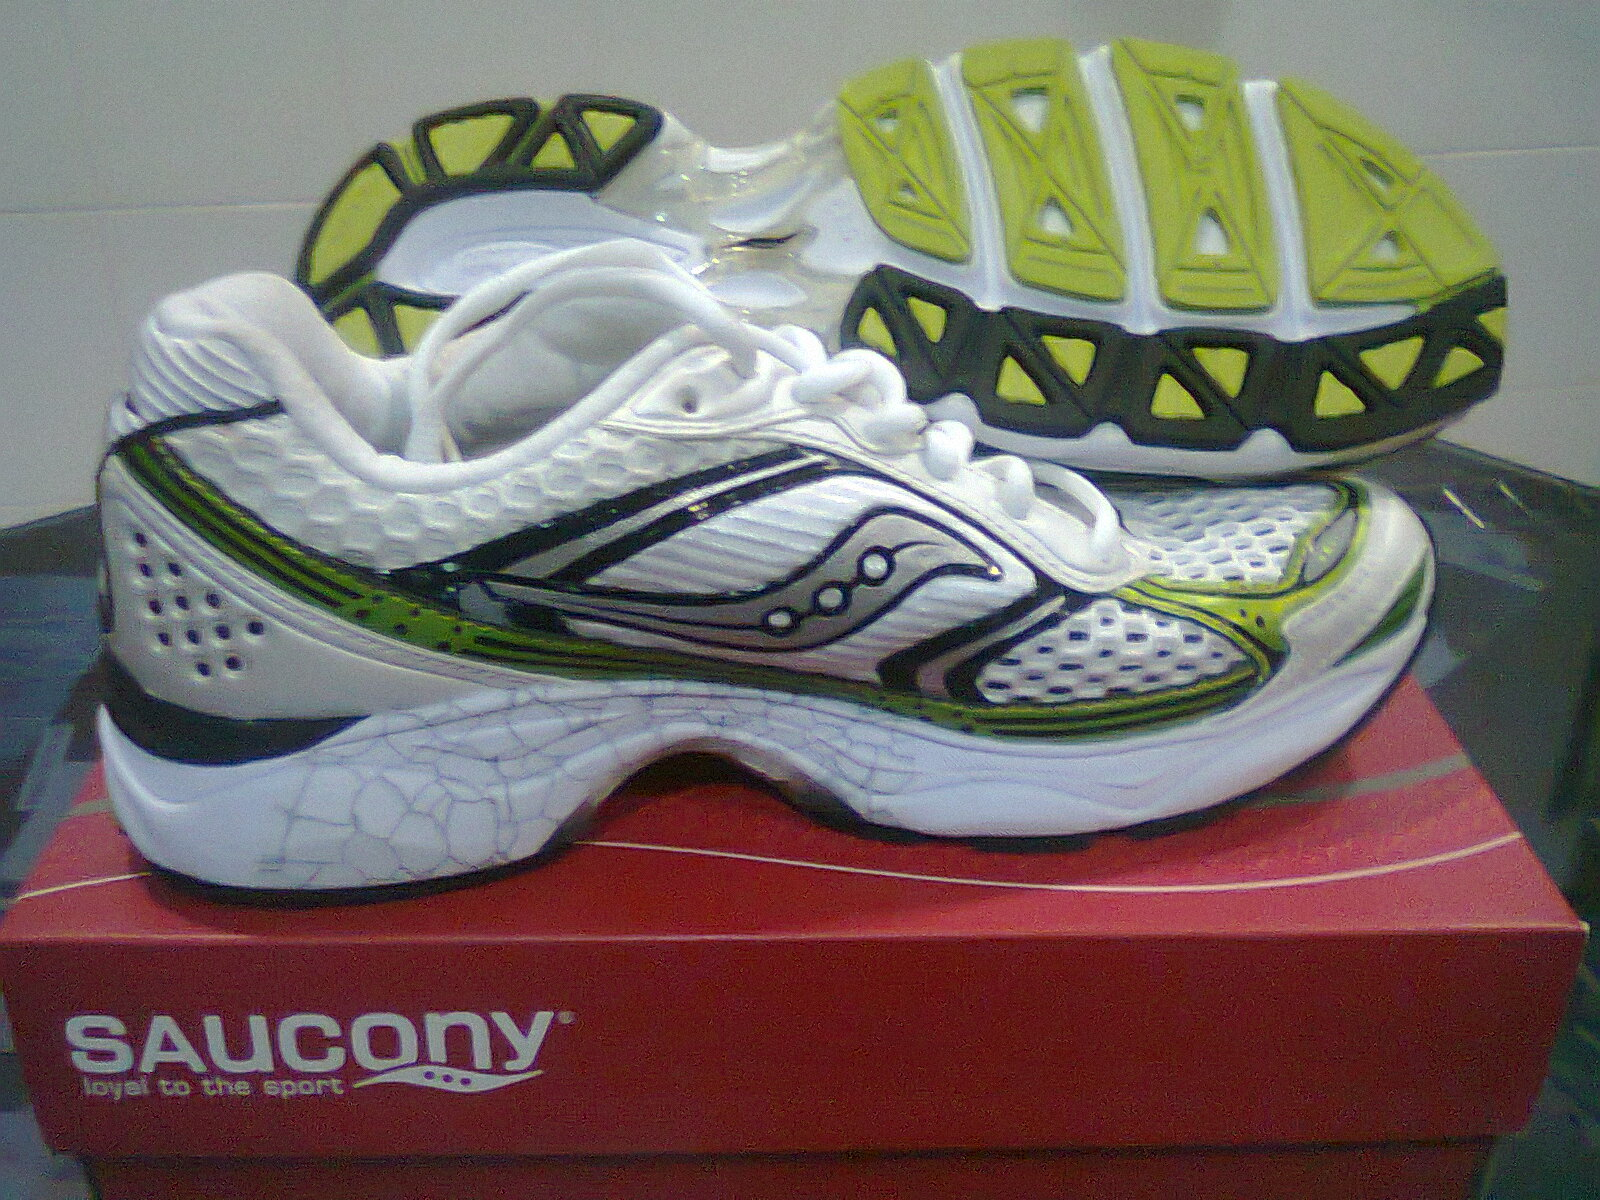 Saucony is among the most respected names in running shoes. We offer a wide range of running and walking shoes, each with the Saucony trademark fit, feel and performance. We've spent years studying the biomechanics of top athletes/5().